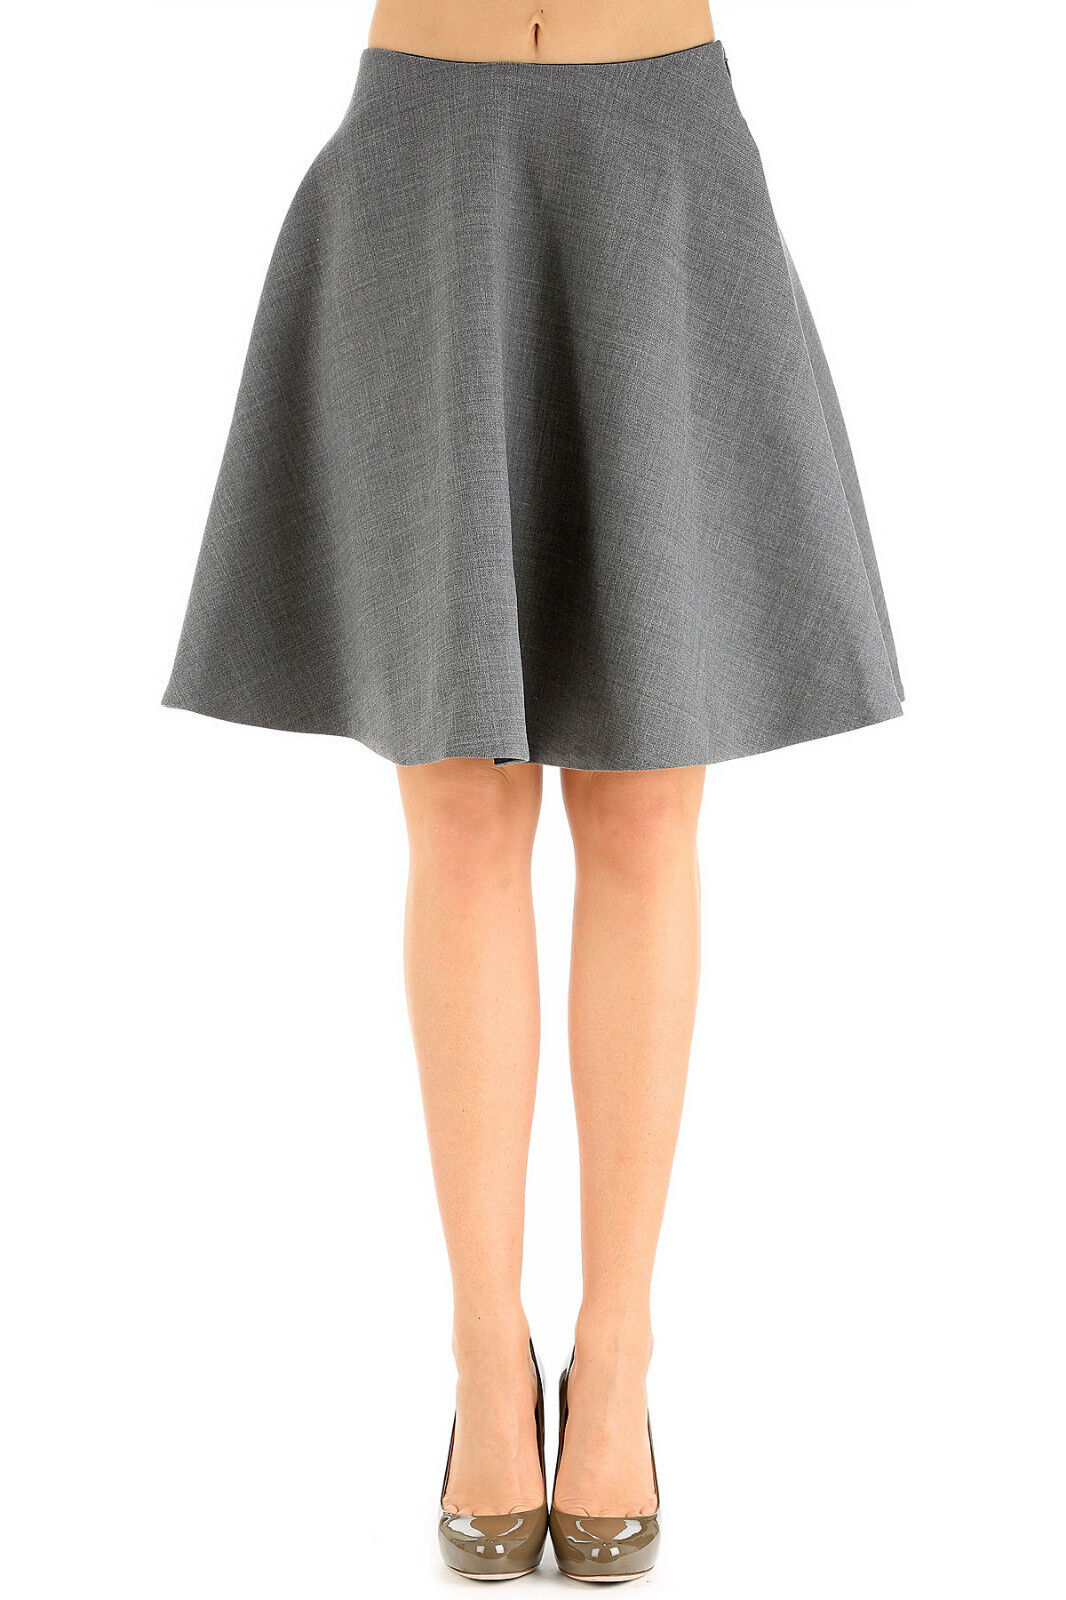 Marc by Marc Jacobs gonna lana, Sixties wool skirt